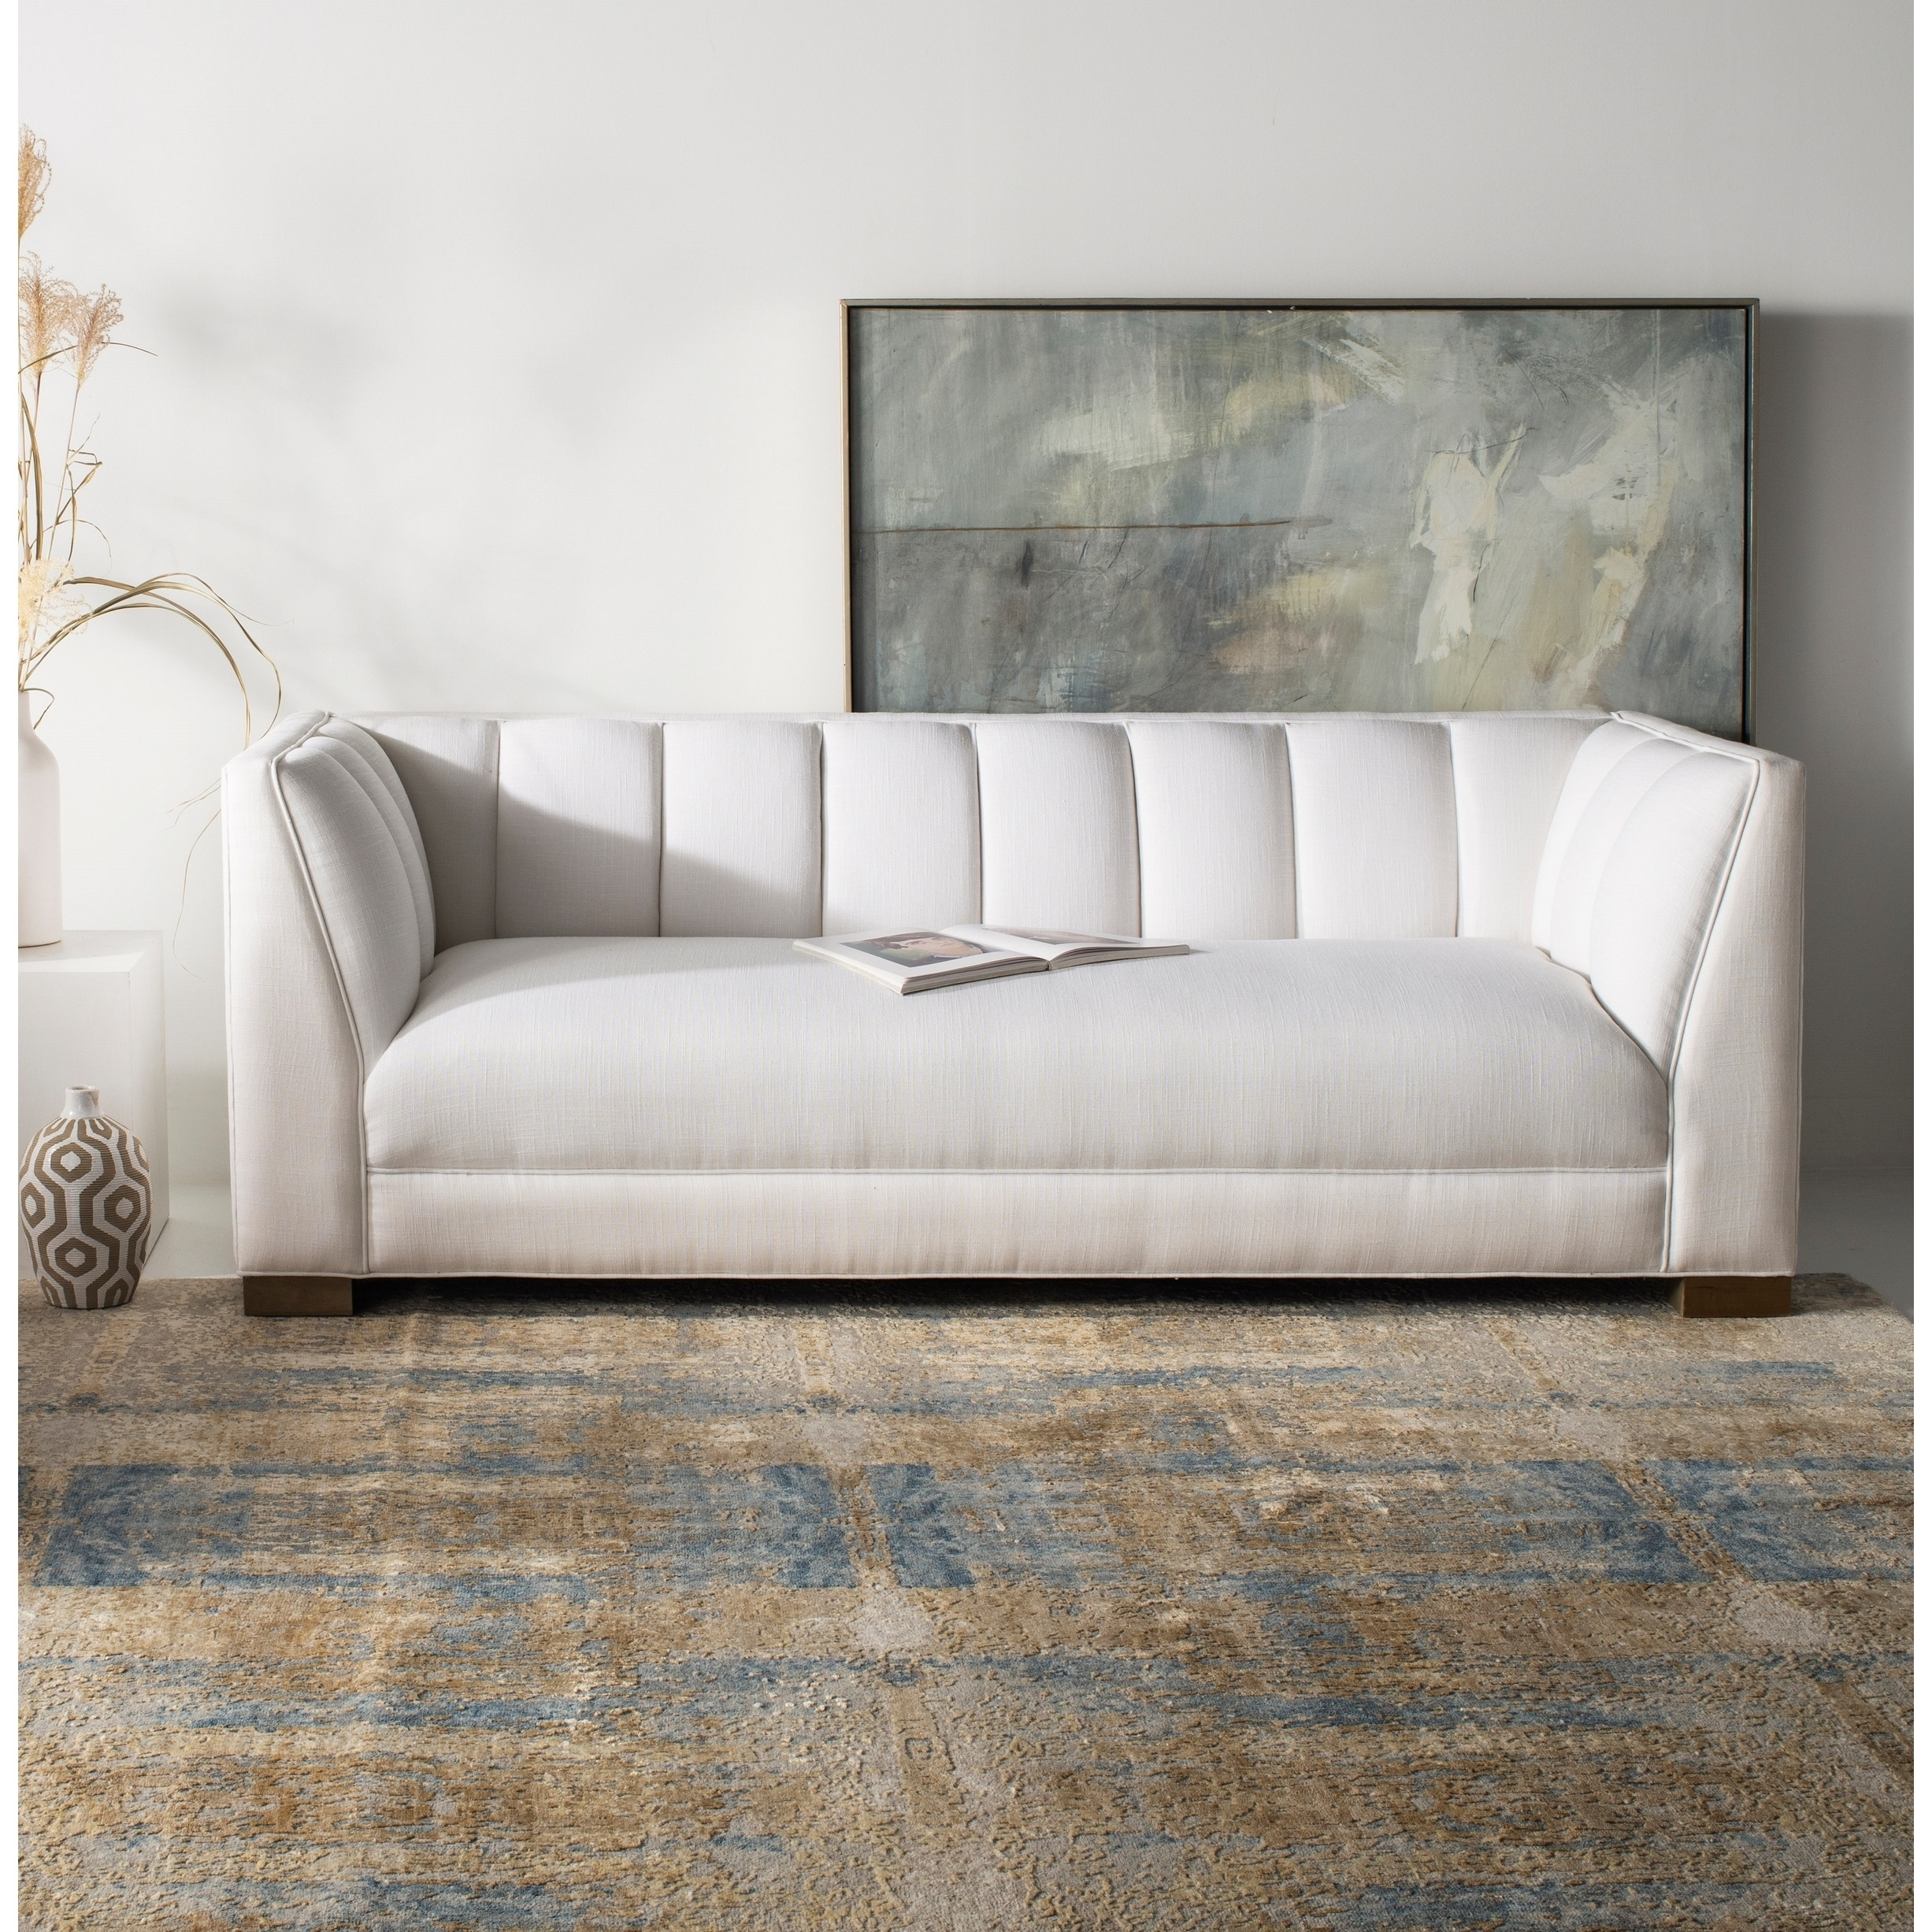 Safavieh Couture Beverly White Linen Blend Sofa With Birch Wood Legs